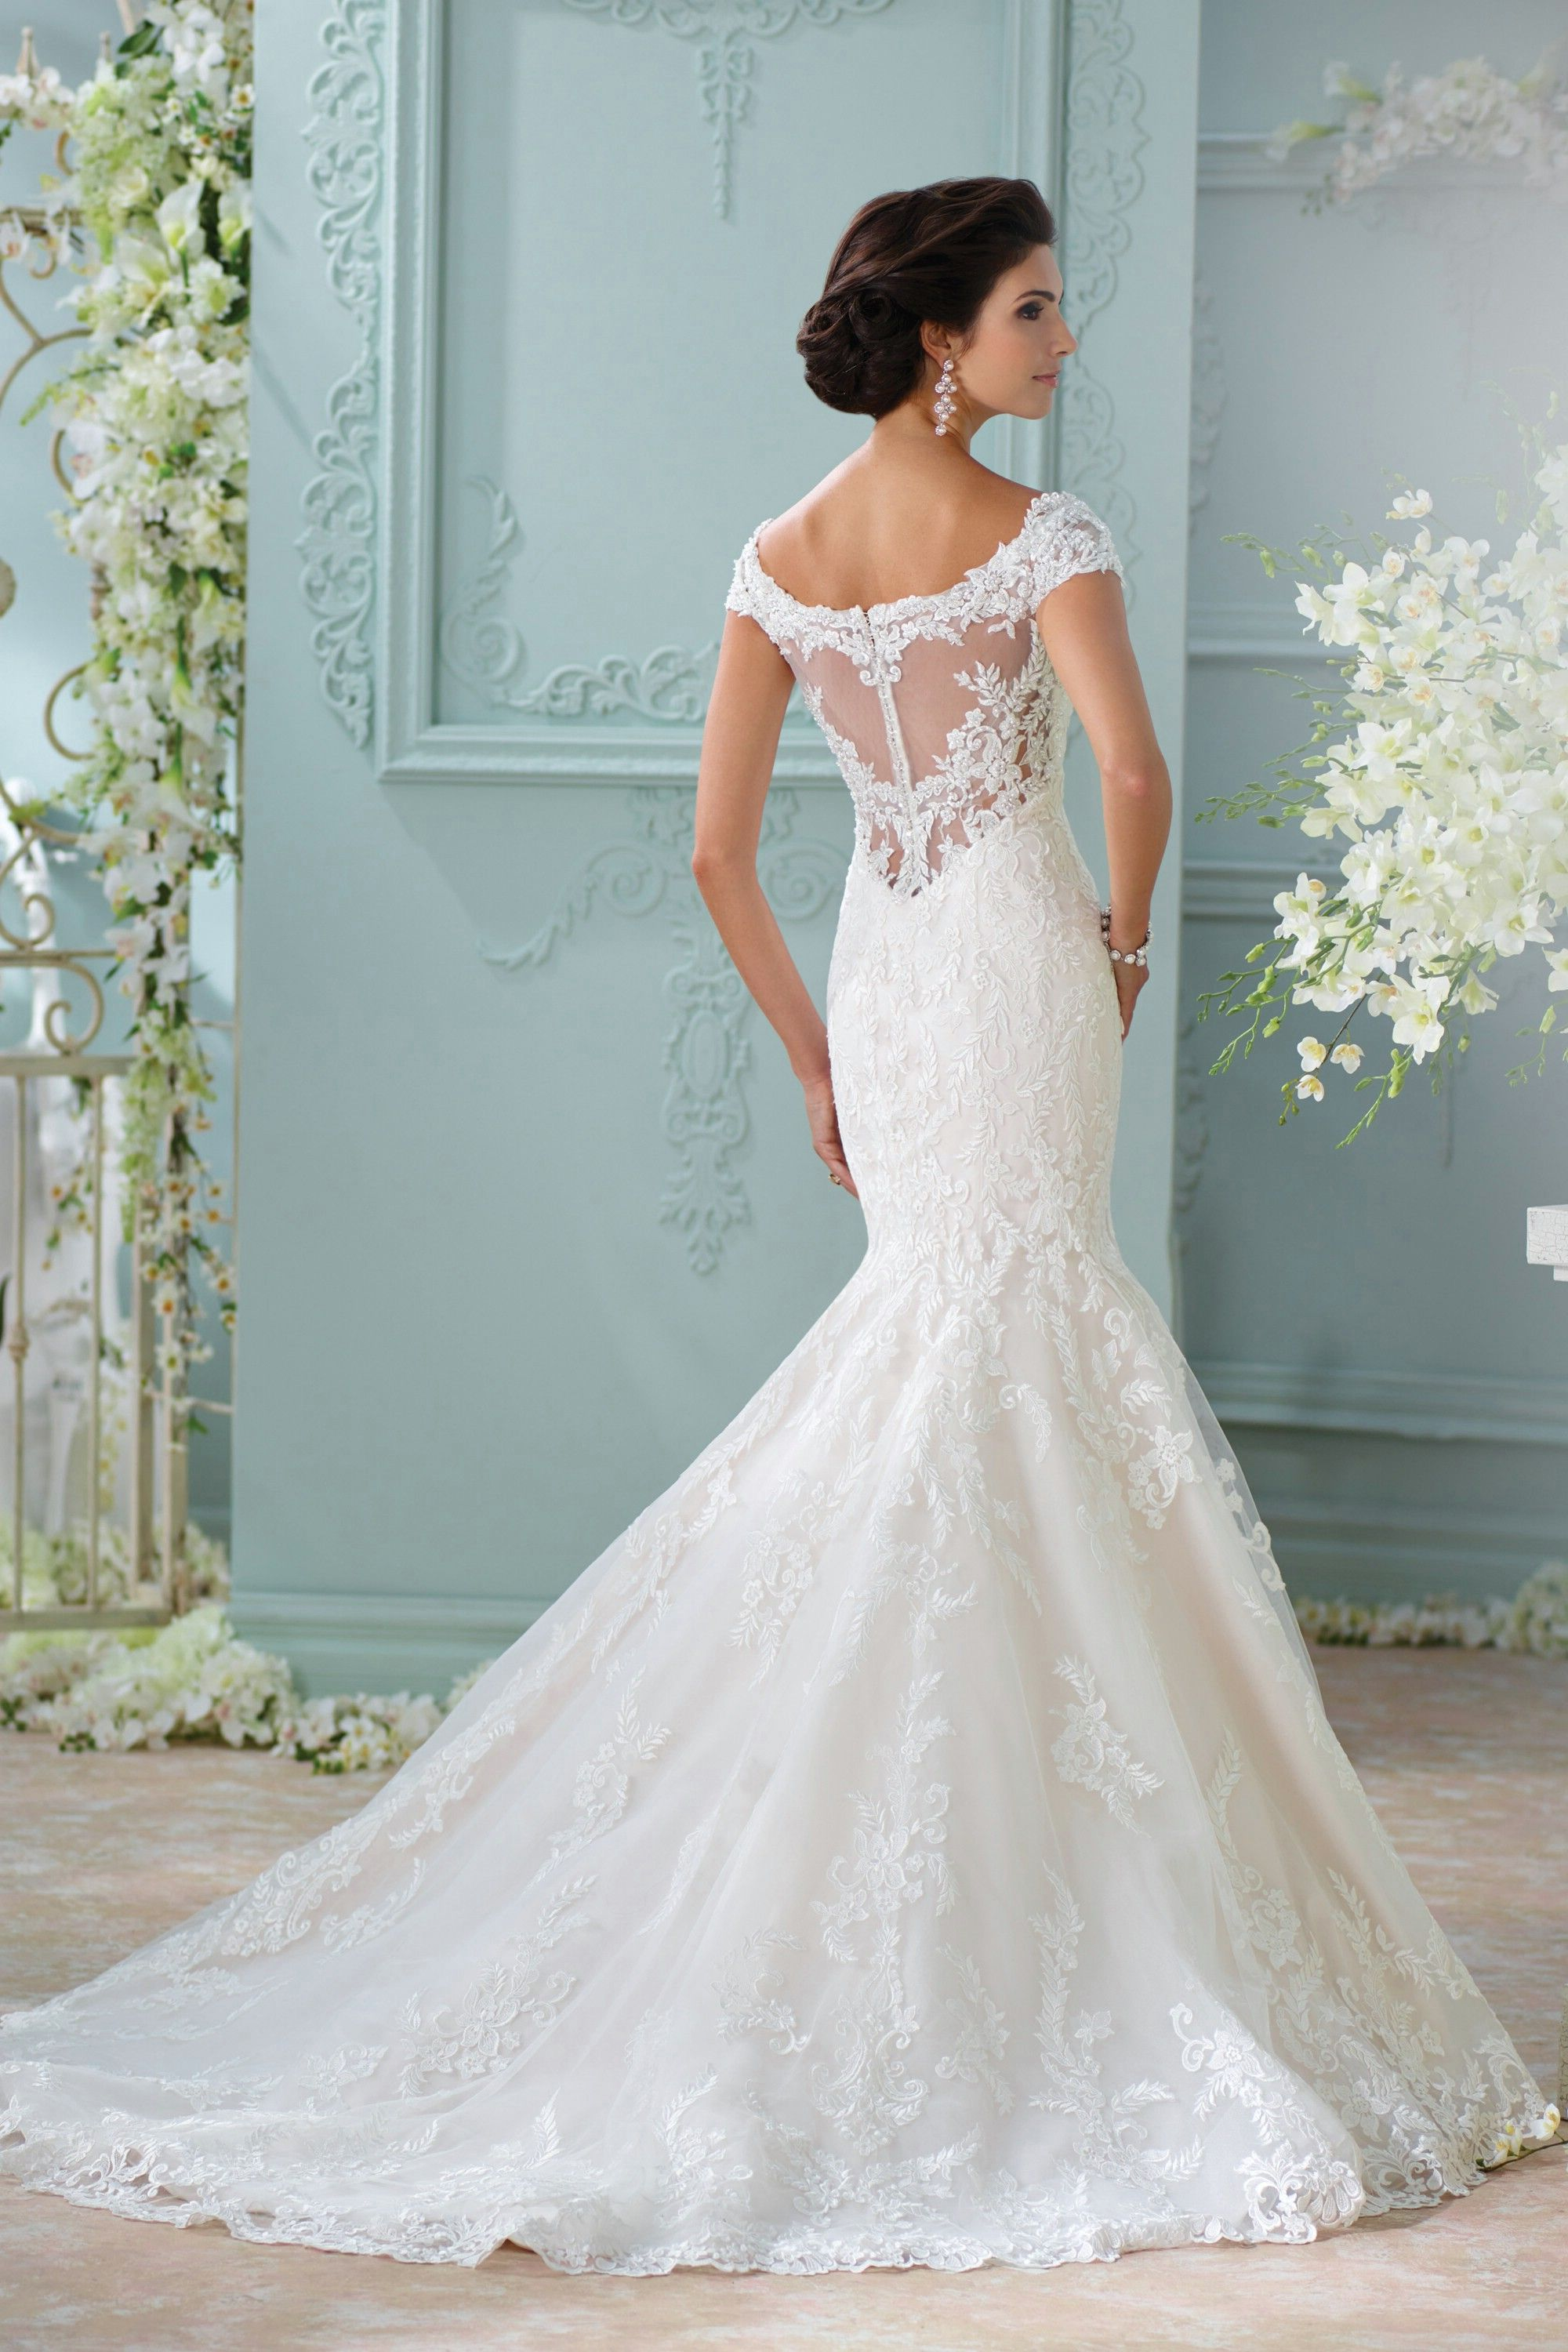 Aura martin thornburg by mon cheri bridals available at luluus